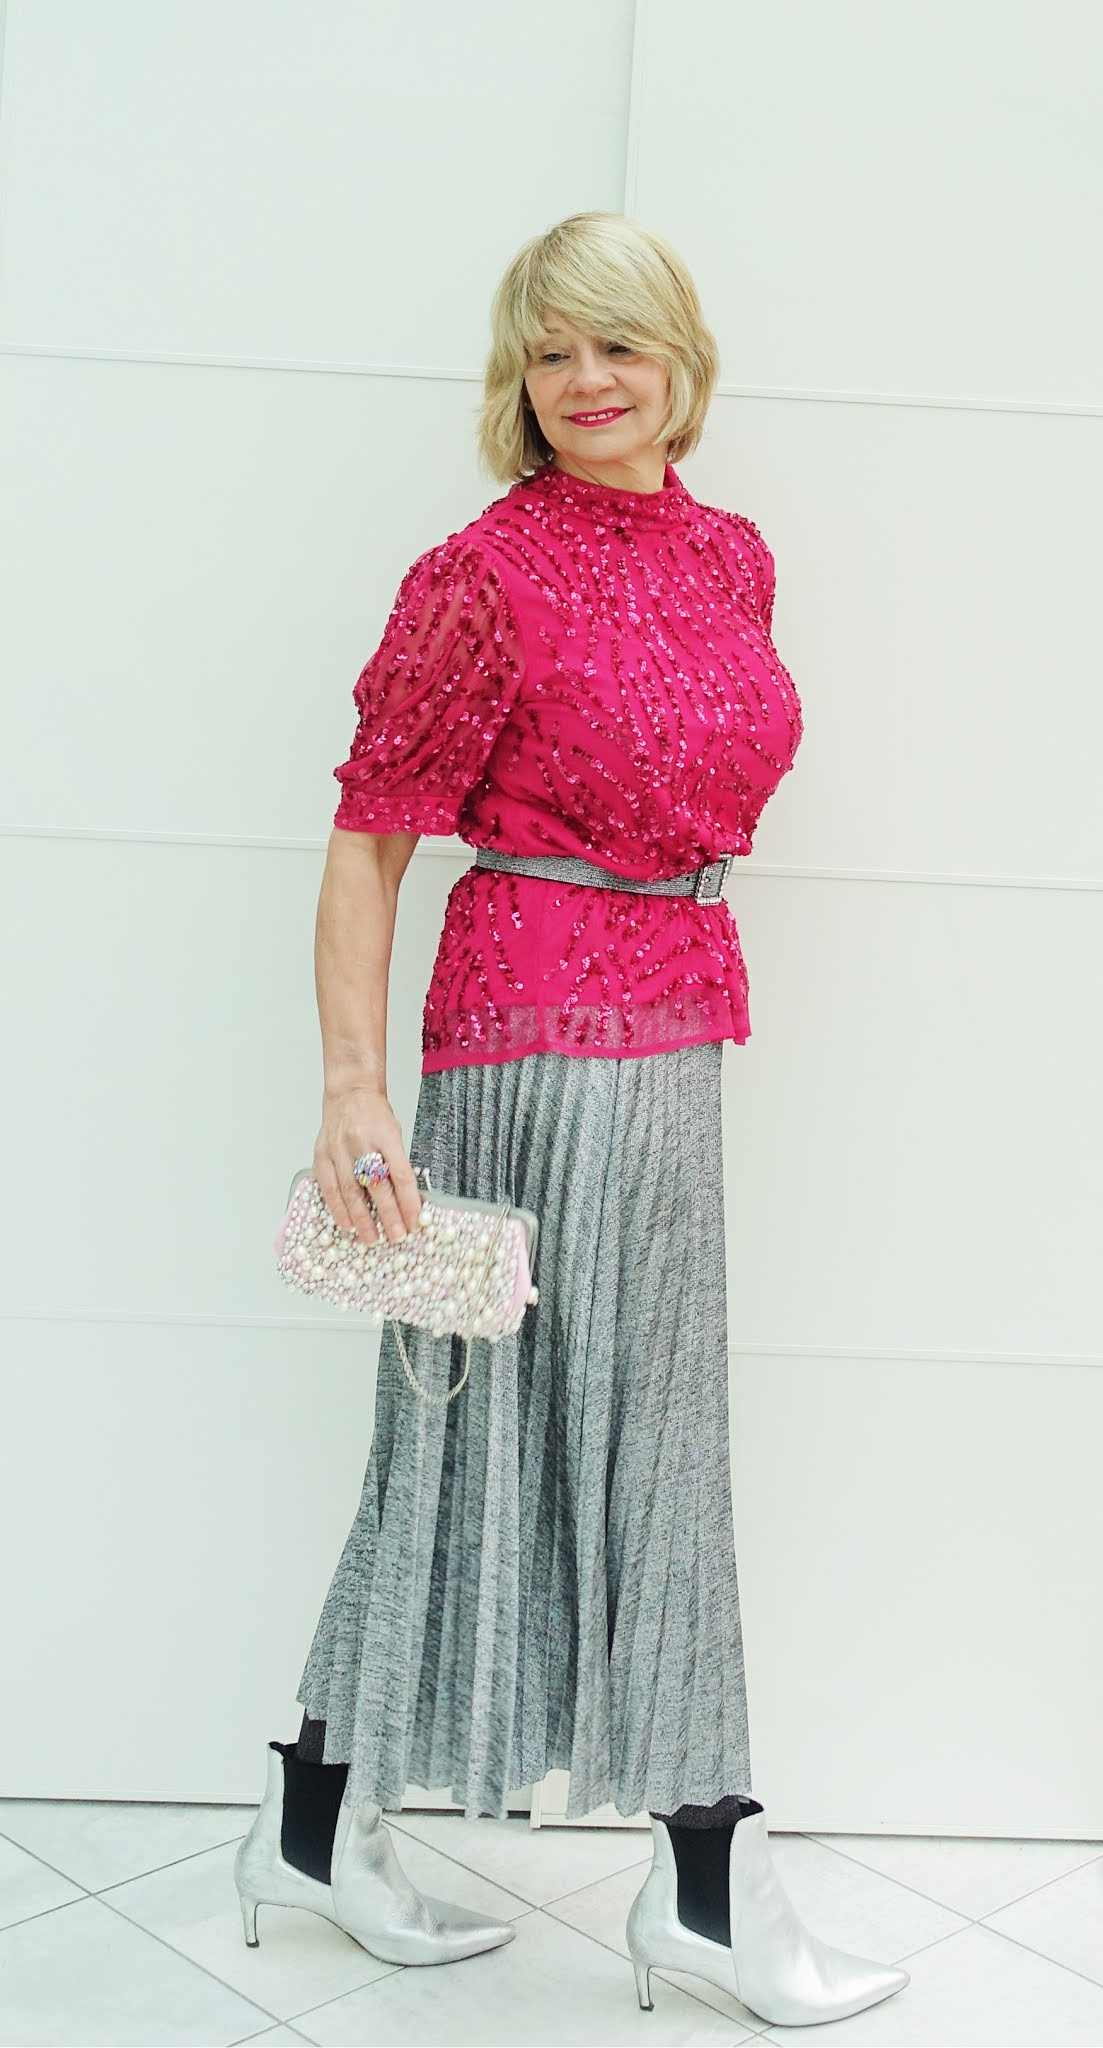 Gail Hanlon from Is This Mutton in a sparkly sequin top for Christmas with a silver pleated skirt and silver boots